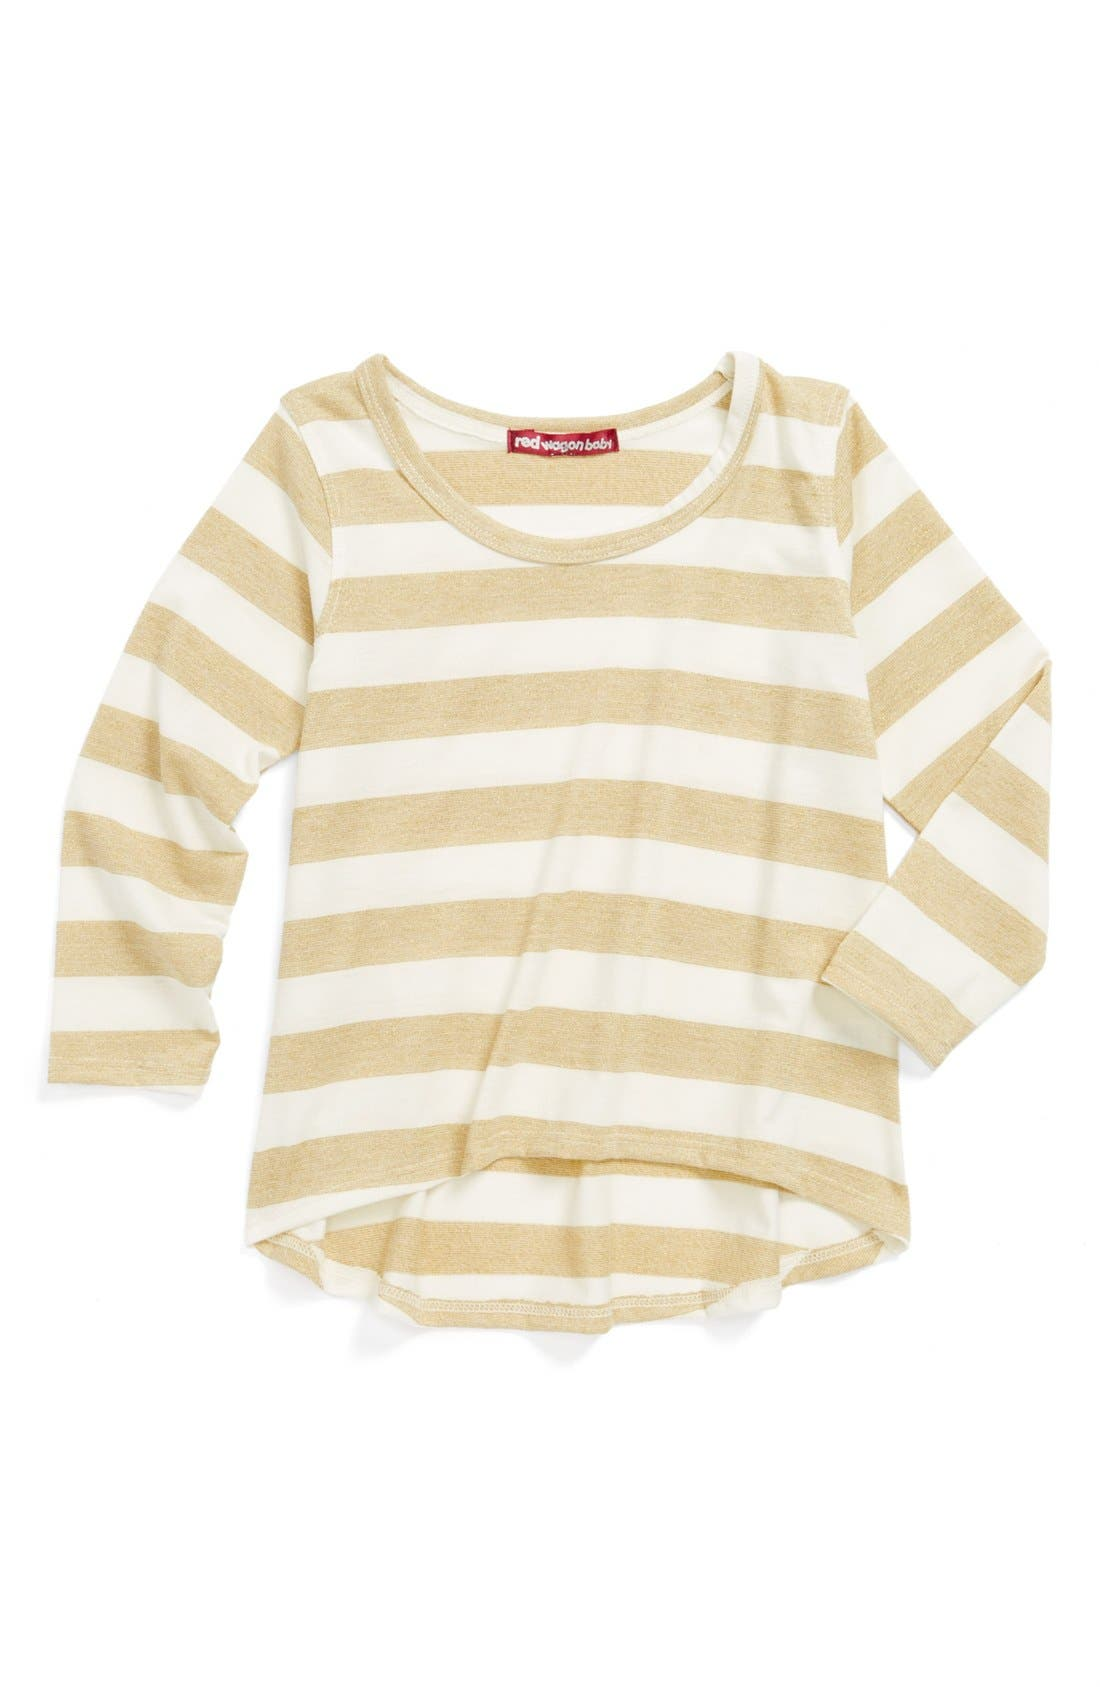 Alternate Image 1 Selected - Red Wagon Baby Gold Stripe High/Low Tunic (Toddler Girls)